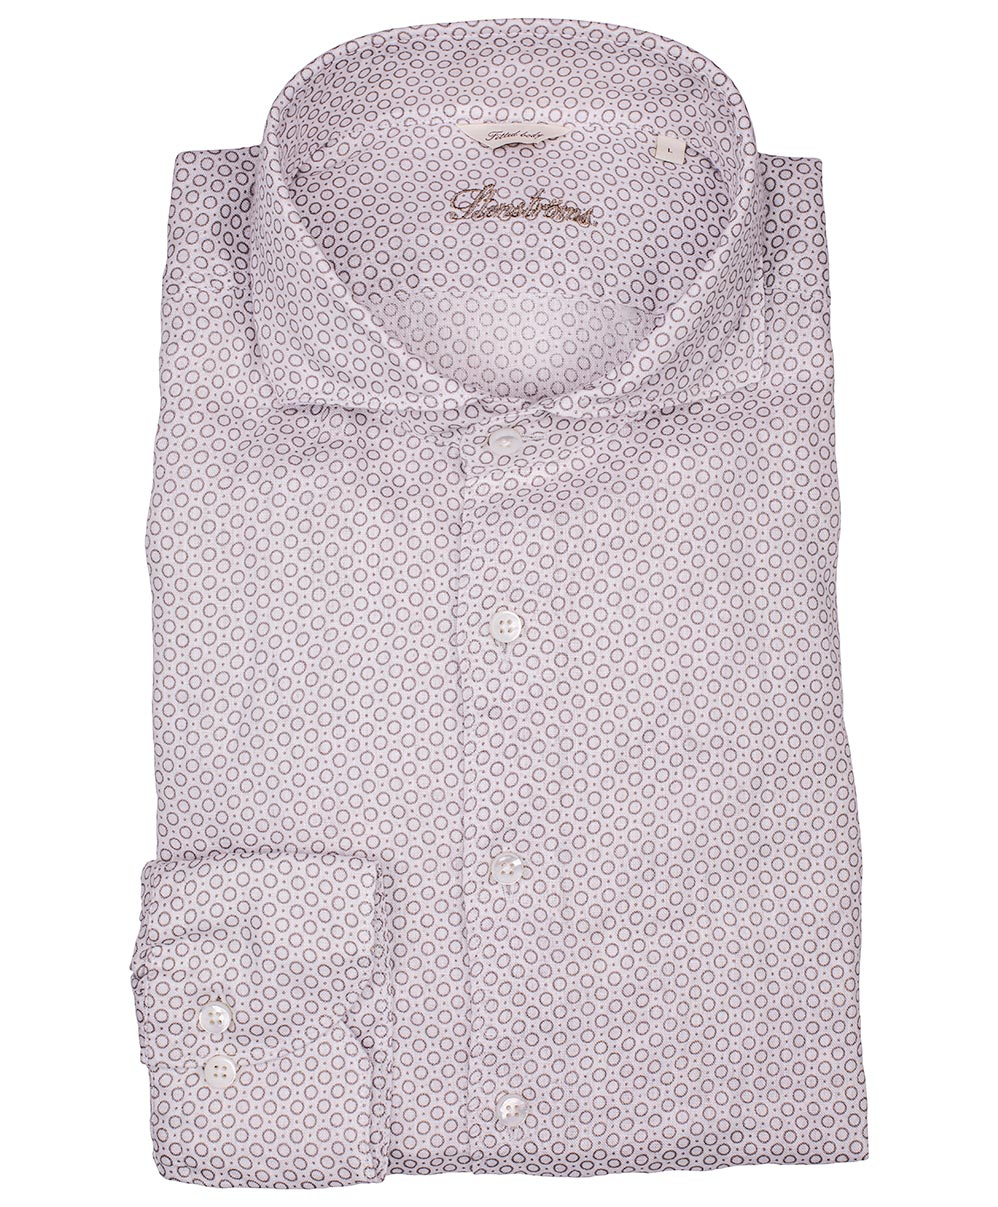 Café/Eggshell Circle & Pindot Pattern on Light Ground Fitted Body Sport Shirt